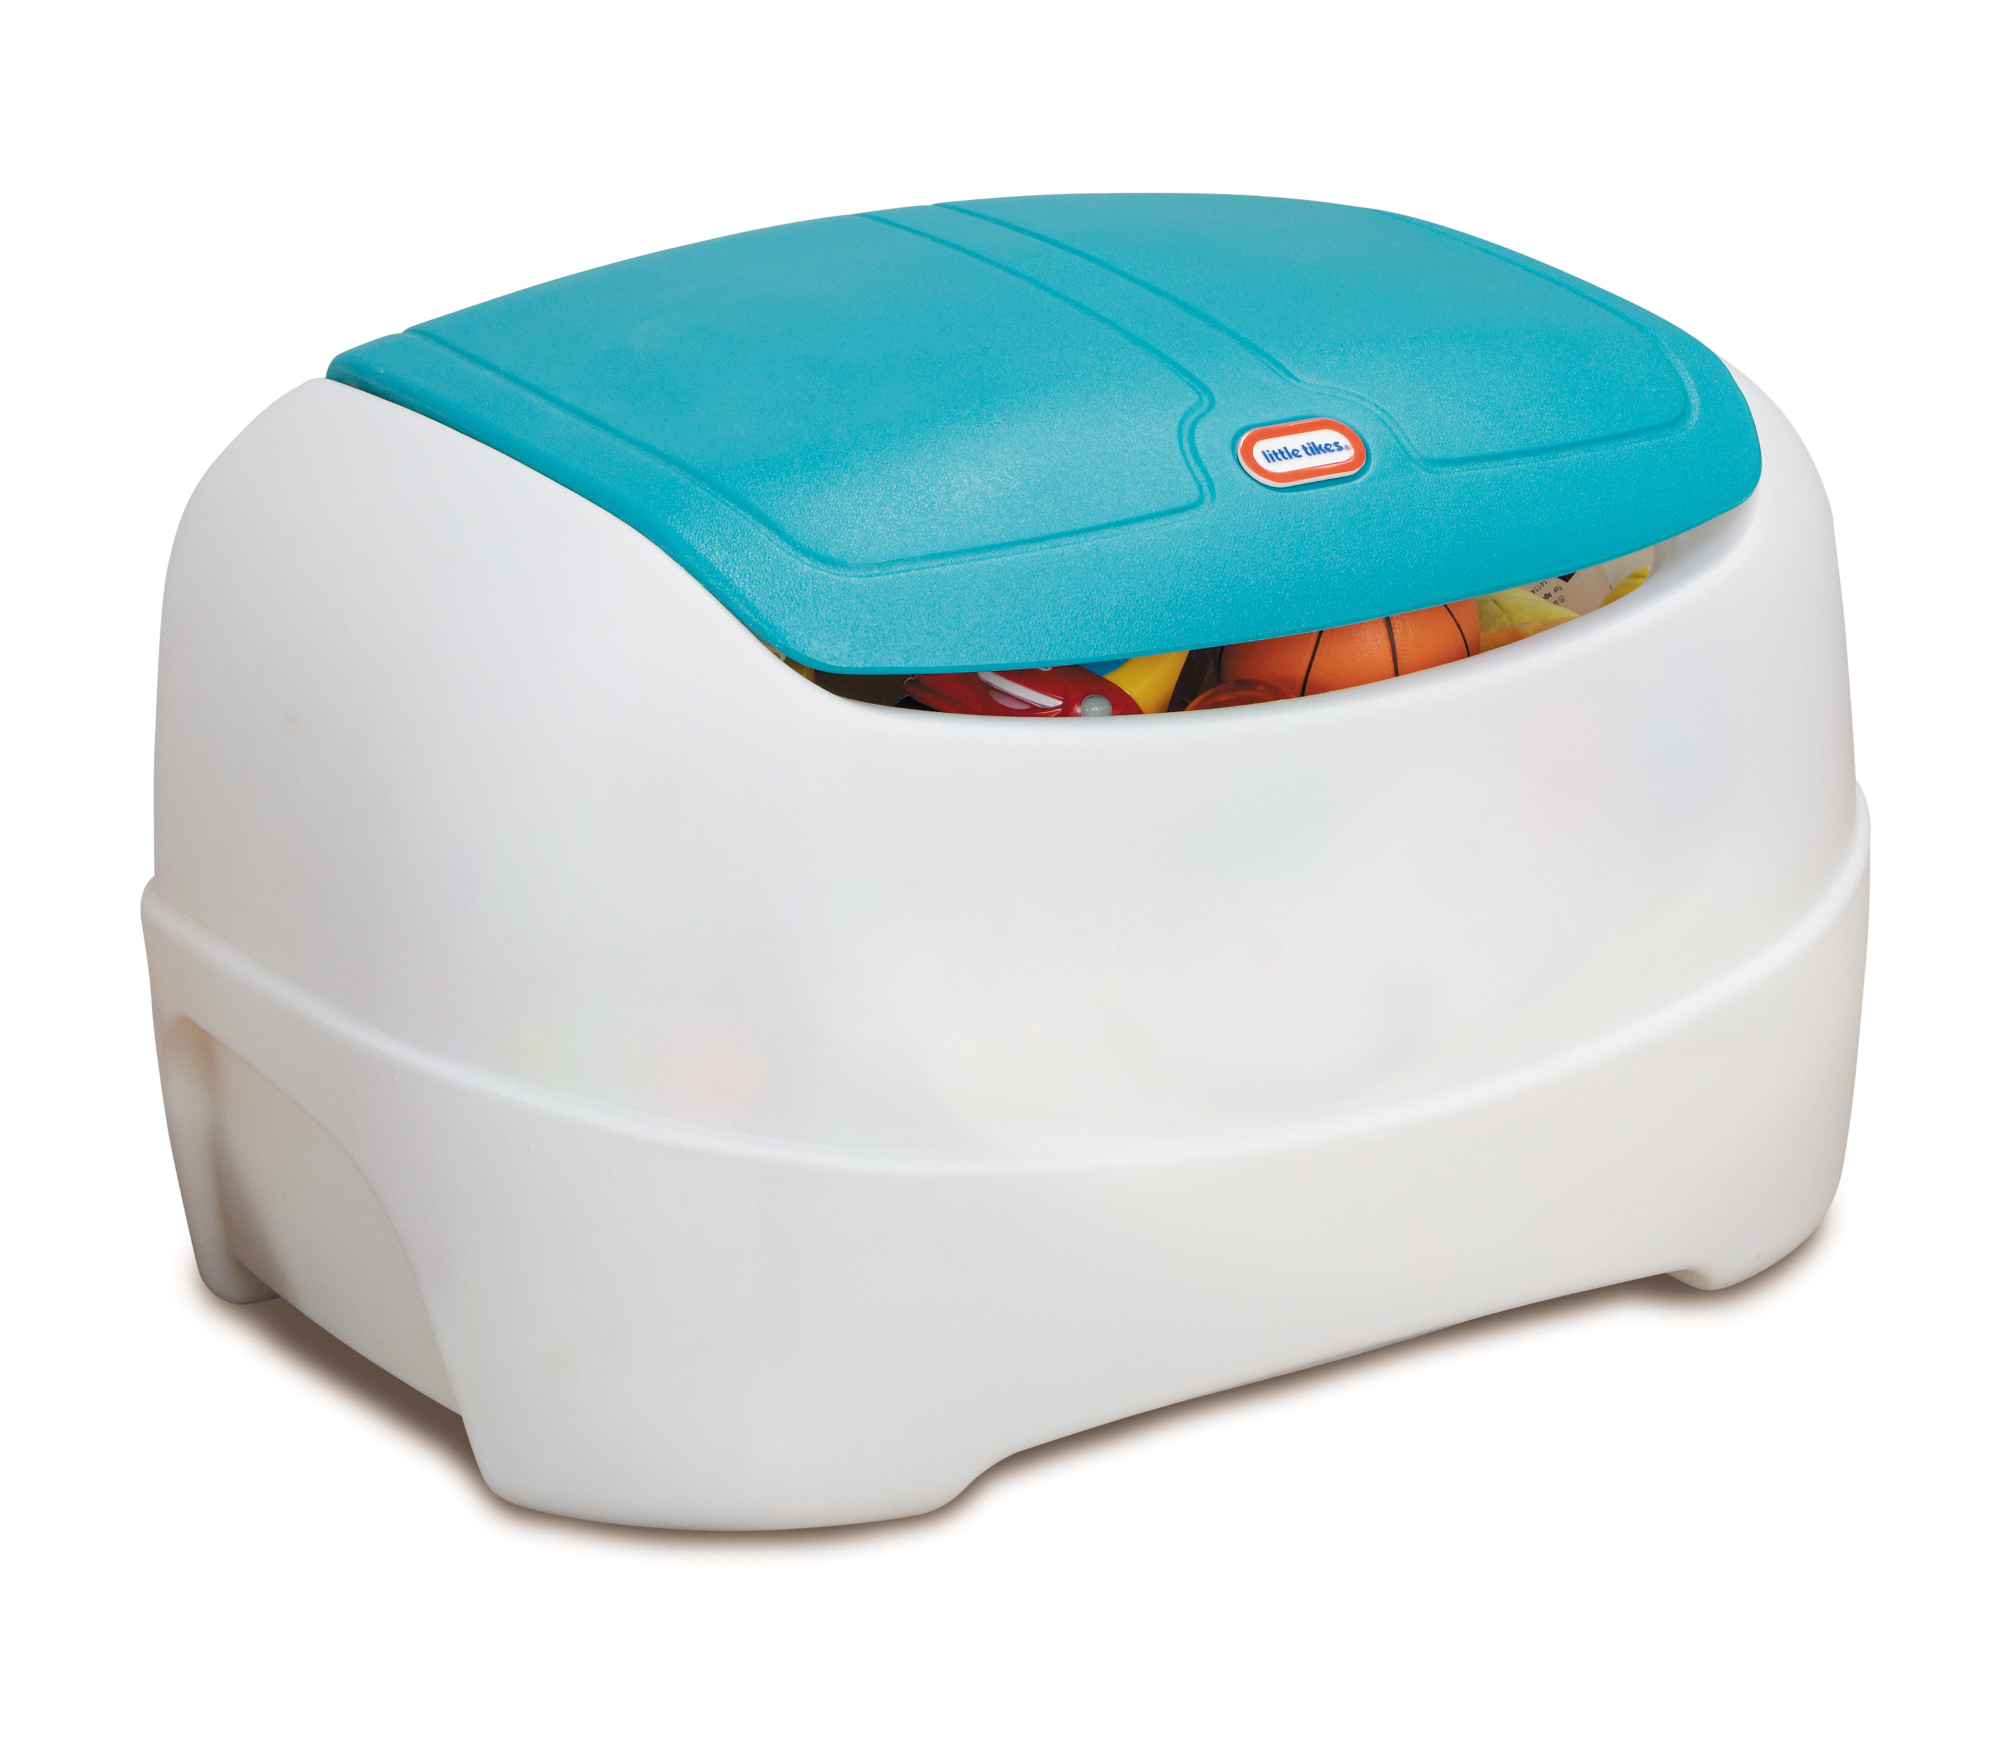 Little Tikes Play N Store Toy Chest